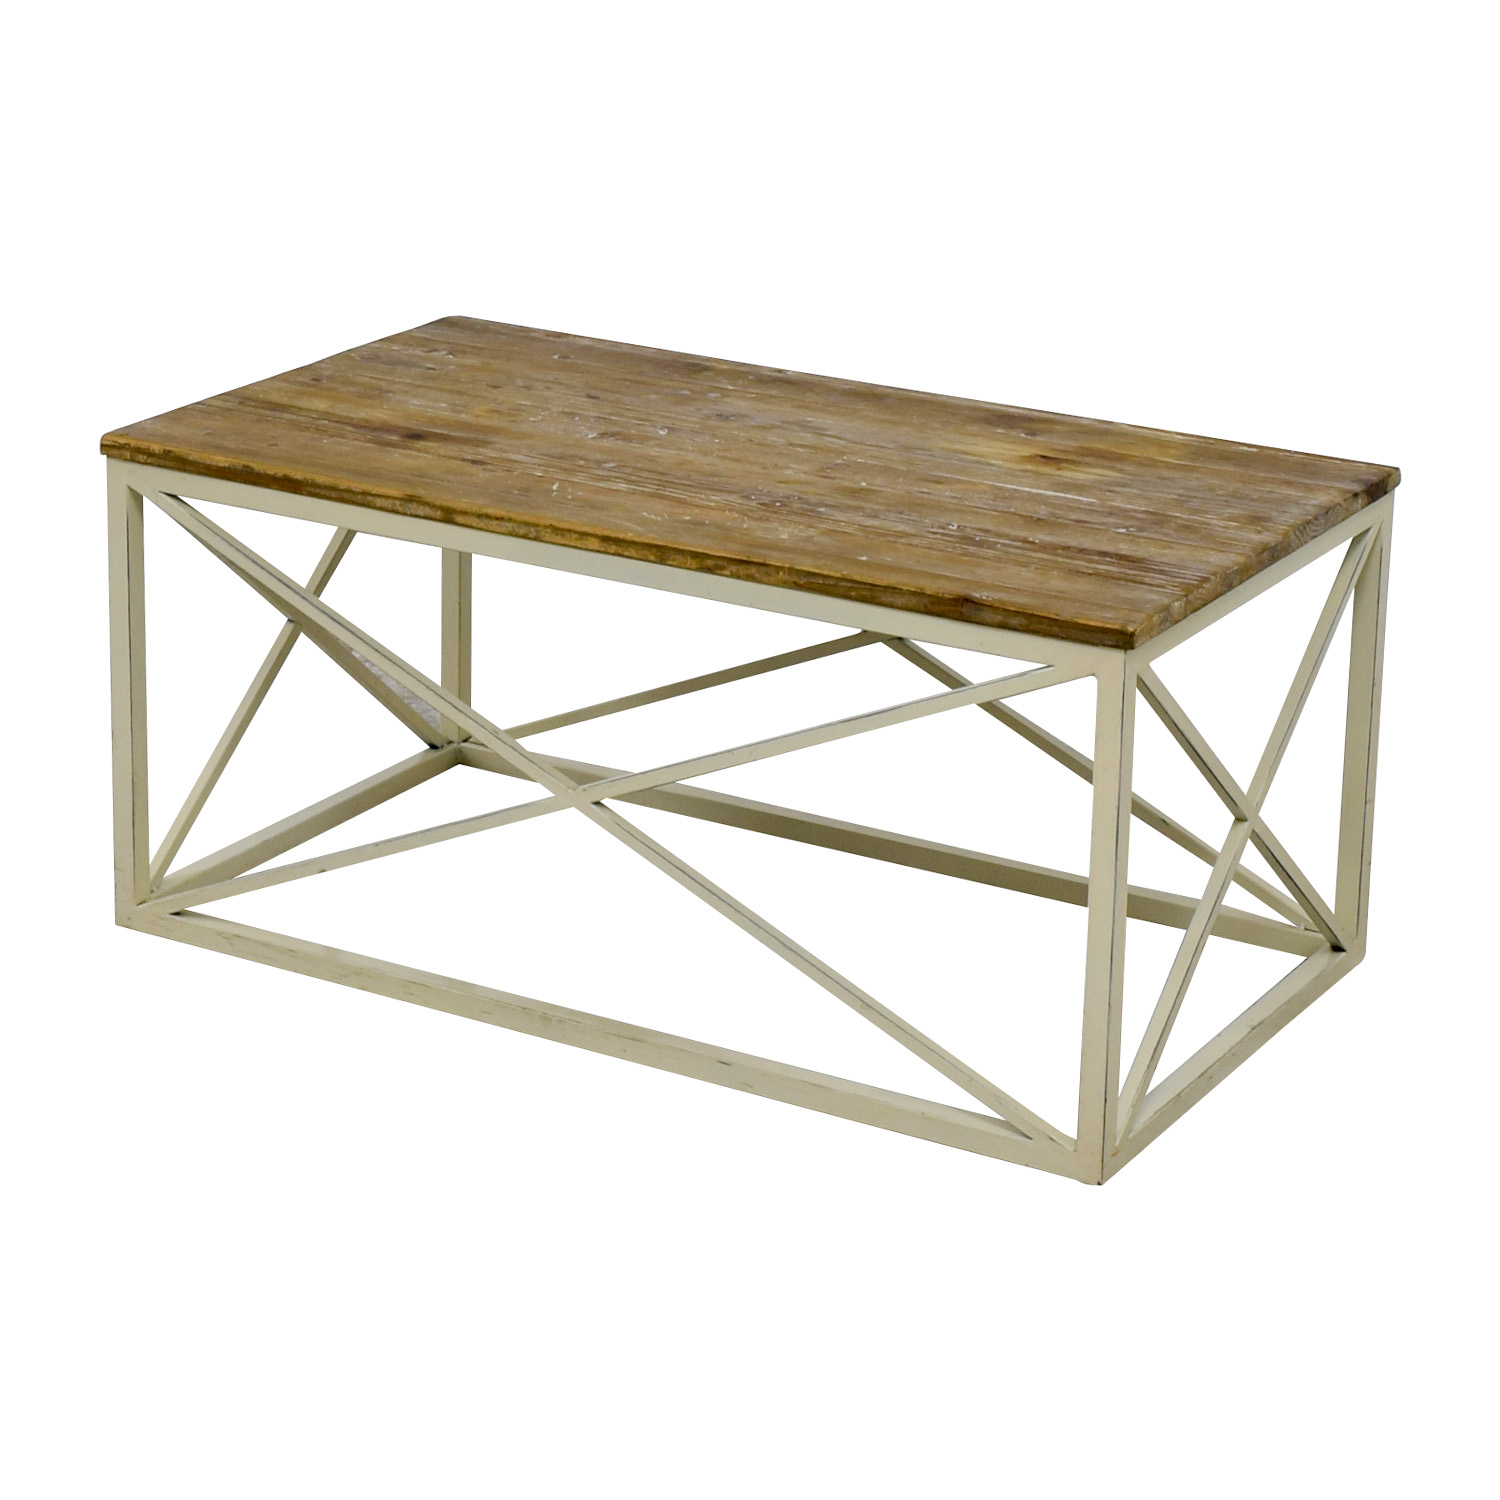 67 off wayfair wayfair wooden and metal coffee table for Chairs and coffee table